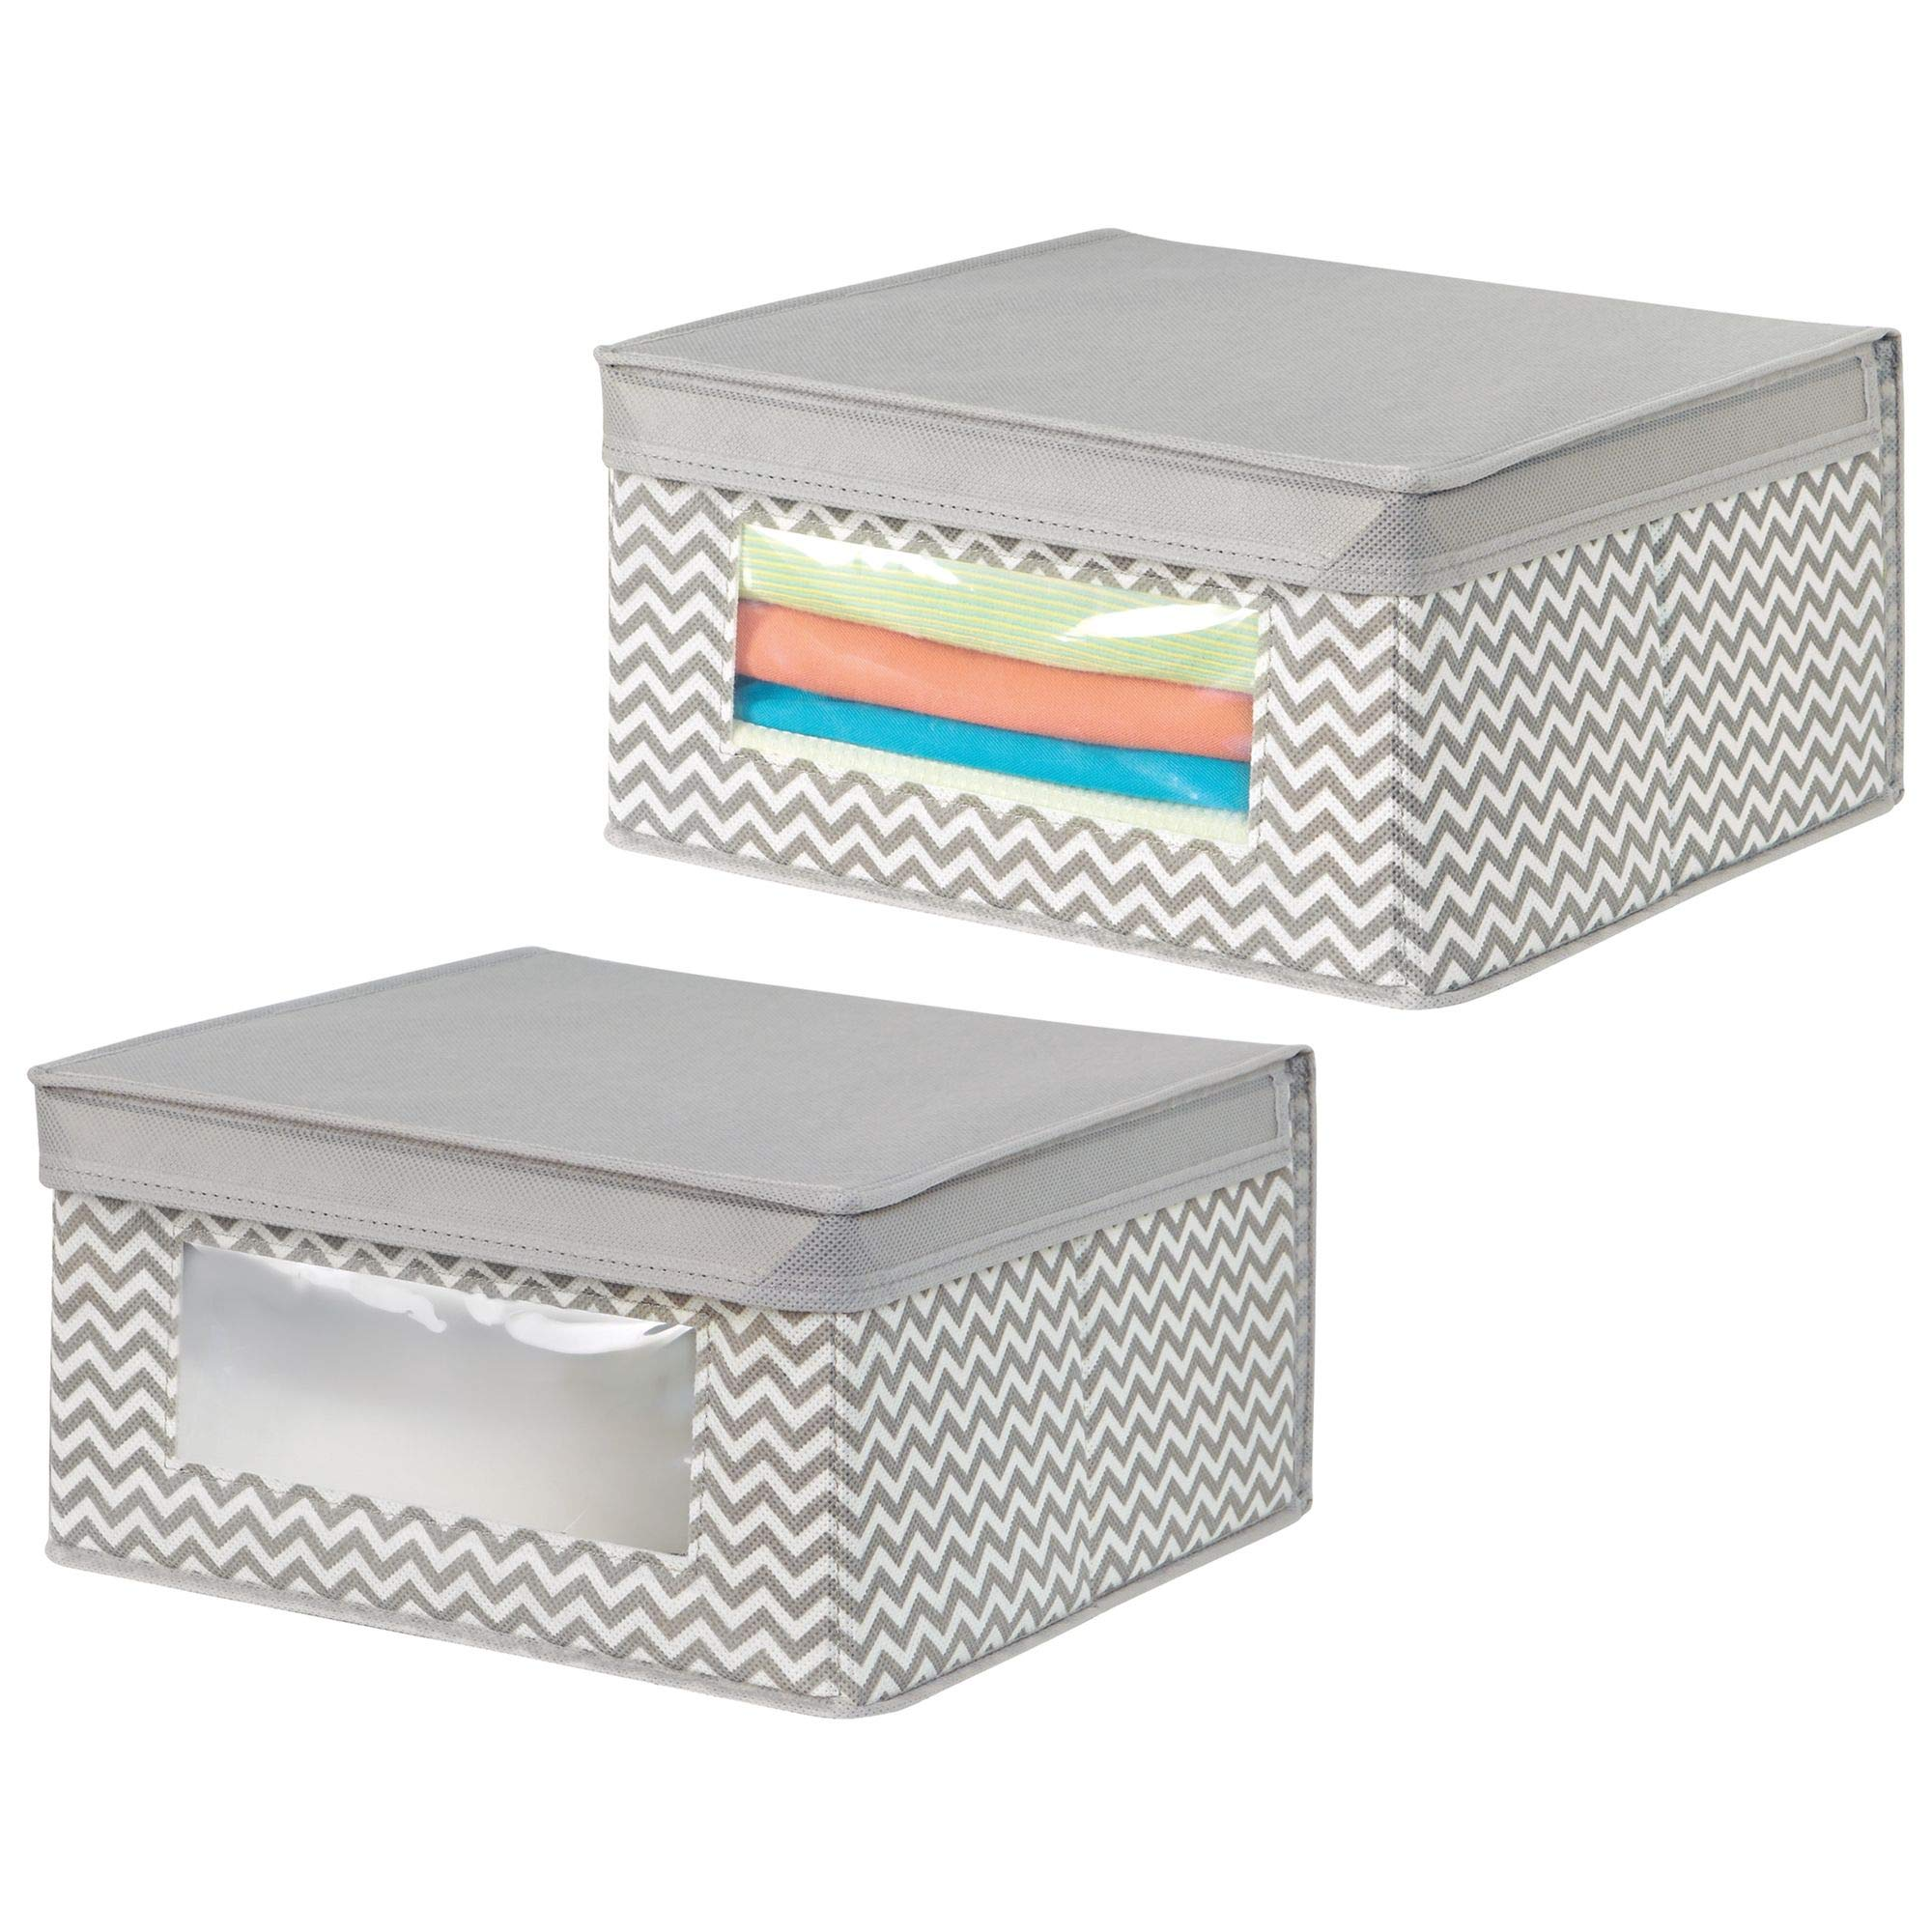 mDesign Soft Stackable Fabric Closet Storage Organizer Holder Bin with Clear Window, Attached Hinged Lid - for Bedroom, Hallway, Entryway, Bathroom - Chevron Print - Medium, 2 Pack - Taupe/Natural